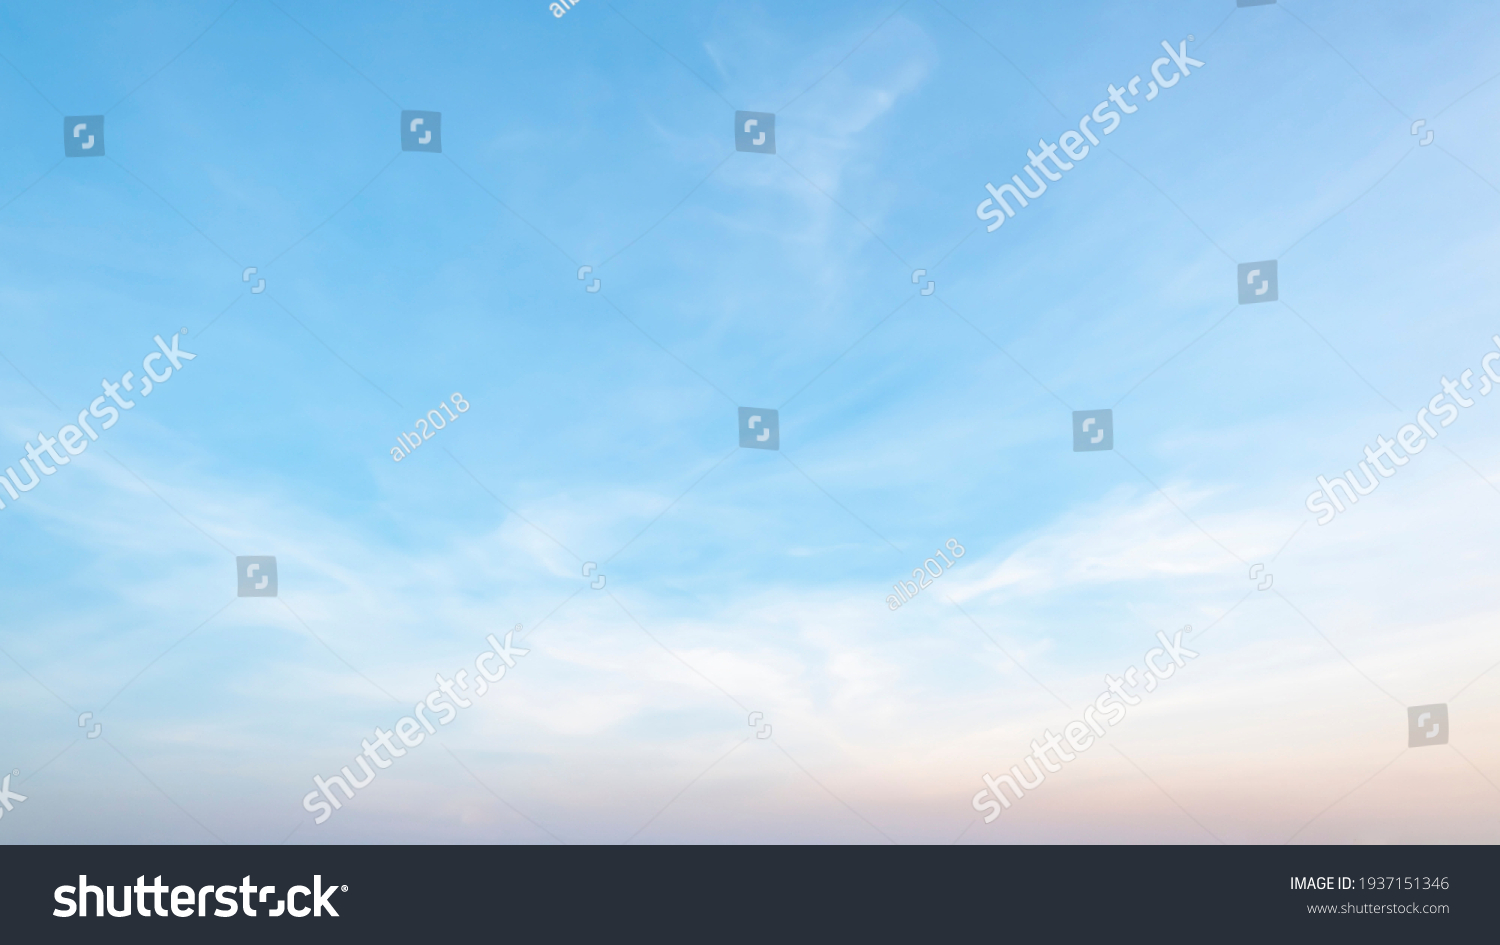 The sky has the light of the sun, the sky is blue, there are small and large clouds alternating and moving slowly, with the sunlight passing, creating a miraculous abstract shape, a hot day. #1937151346